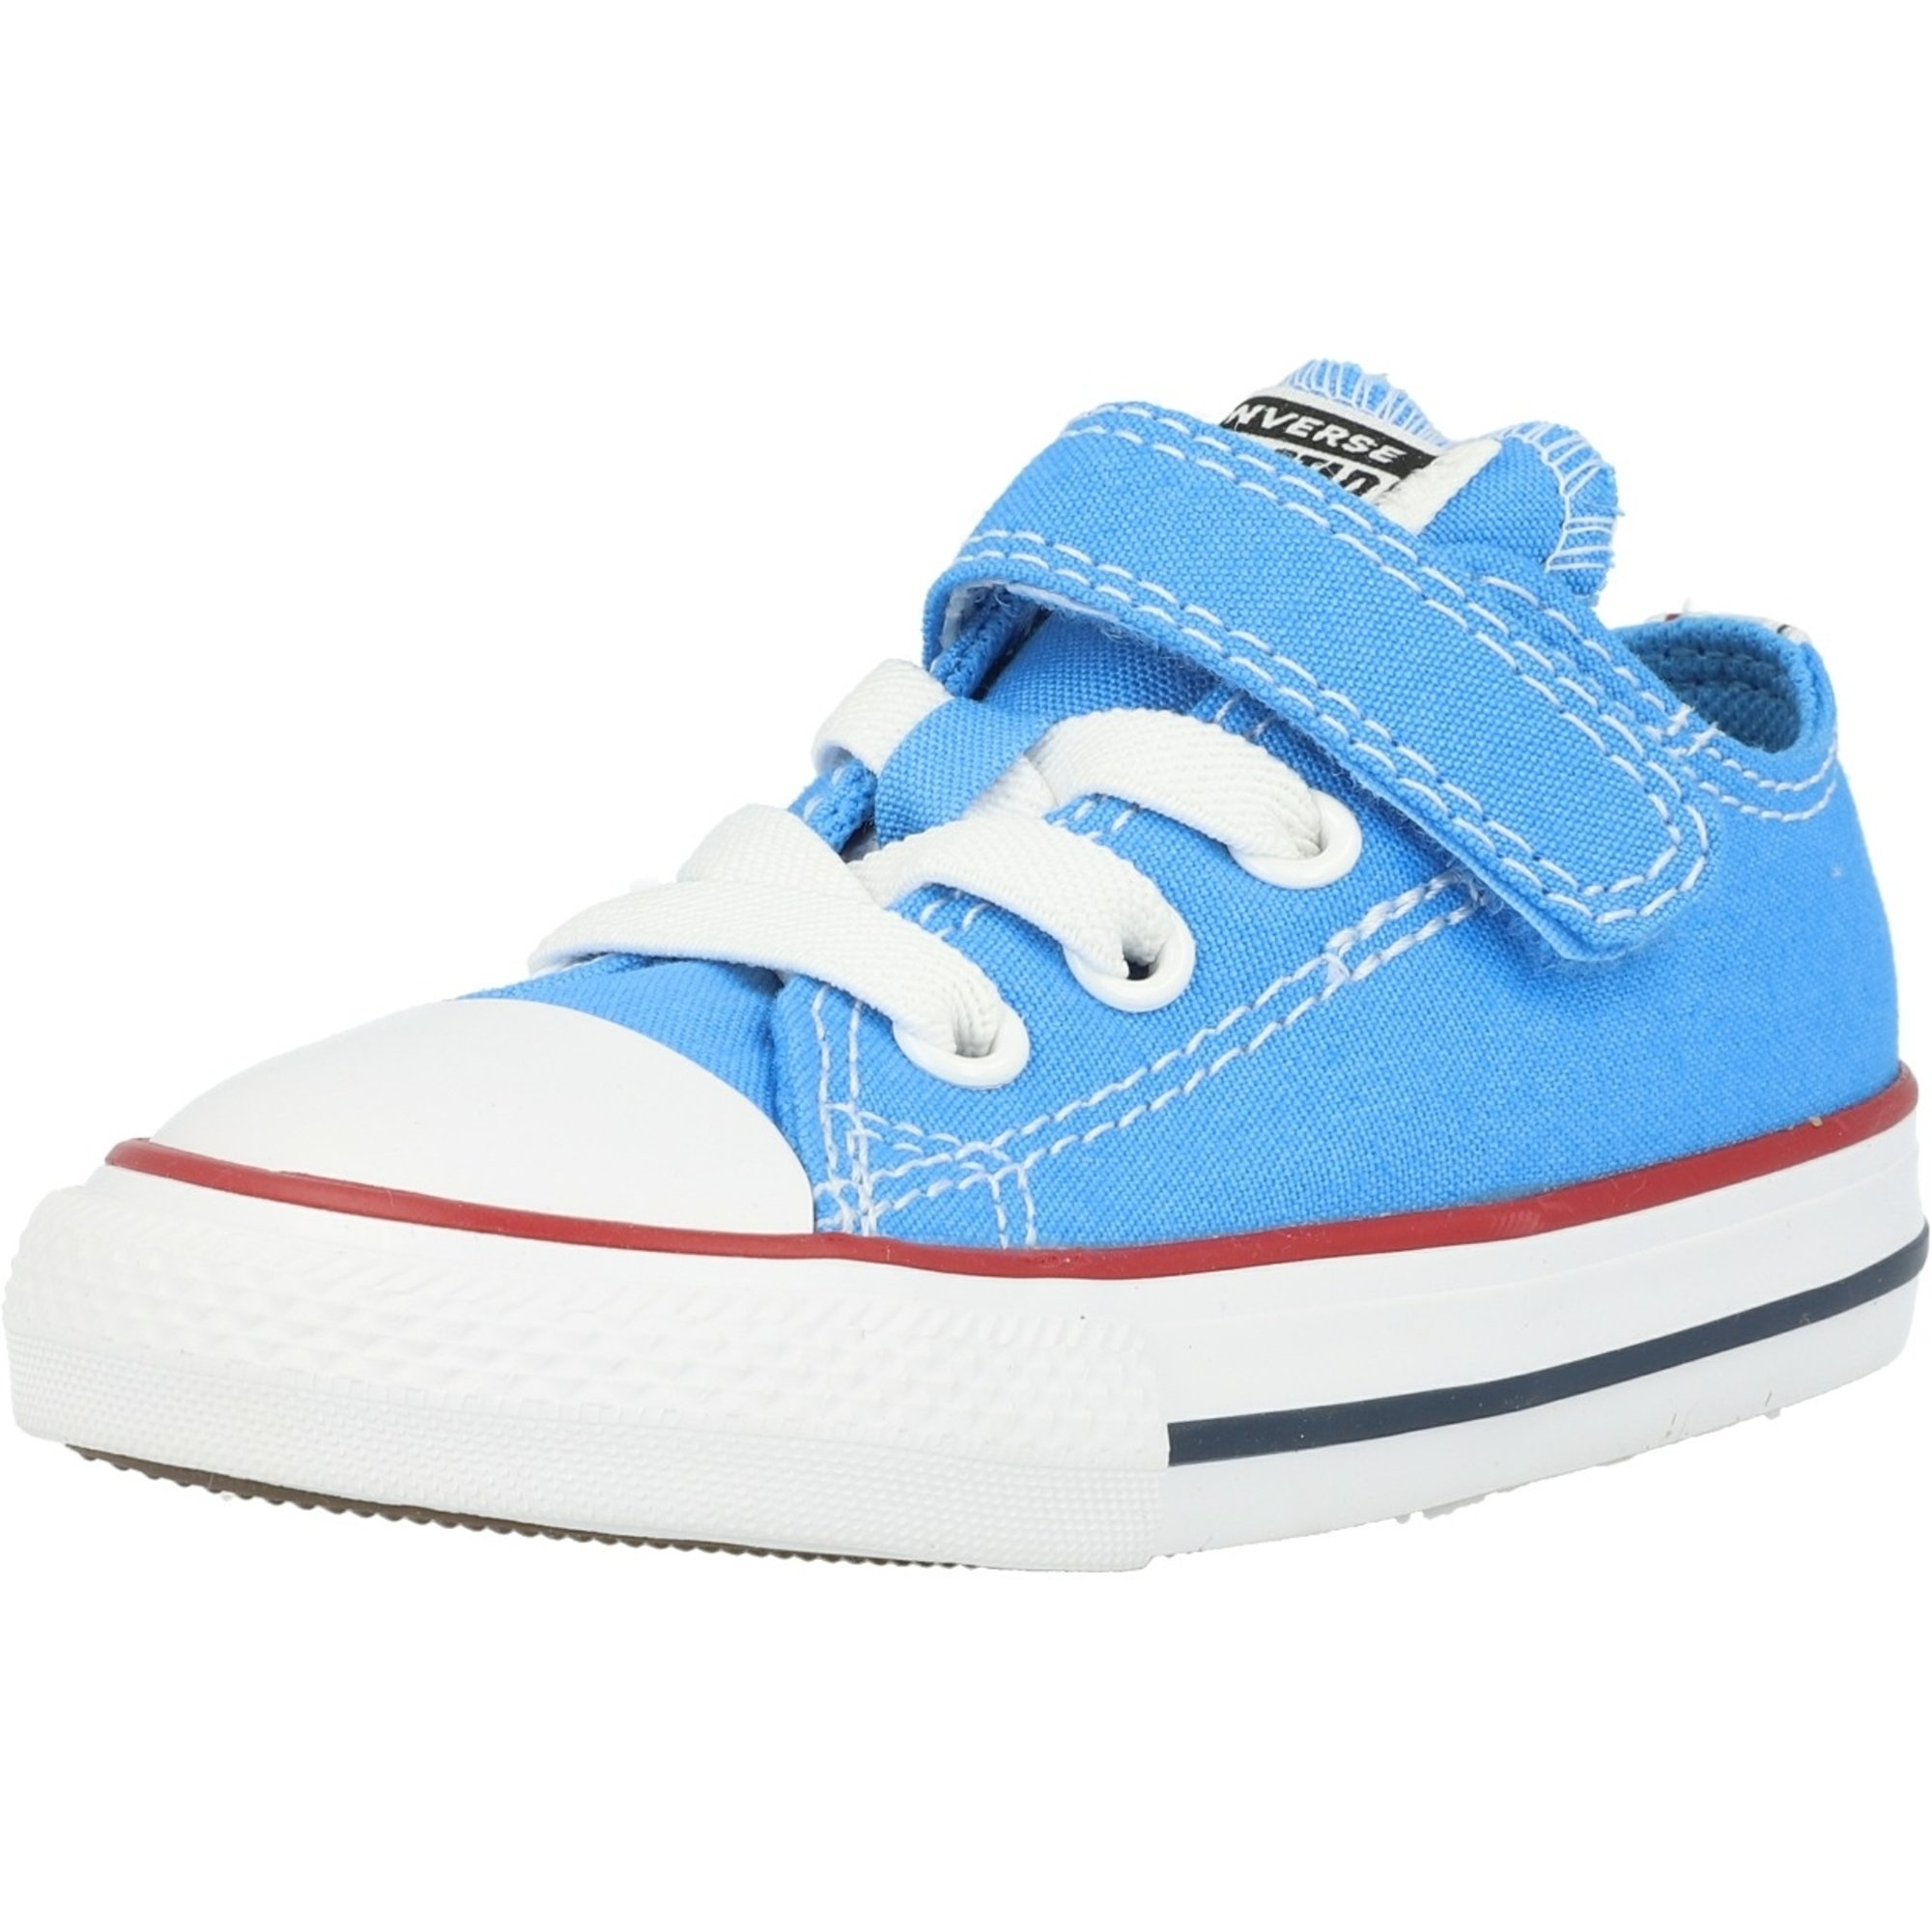 Kids Converse All Stars Low Trainers Ox Canvas Chuck Taylor Boys Girls Infants